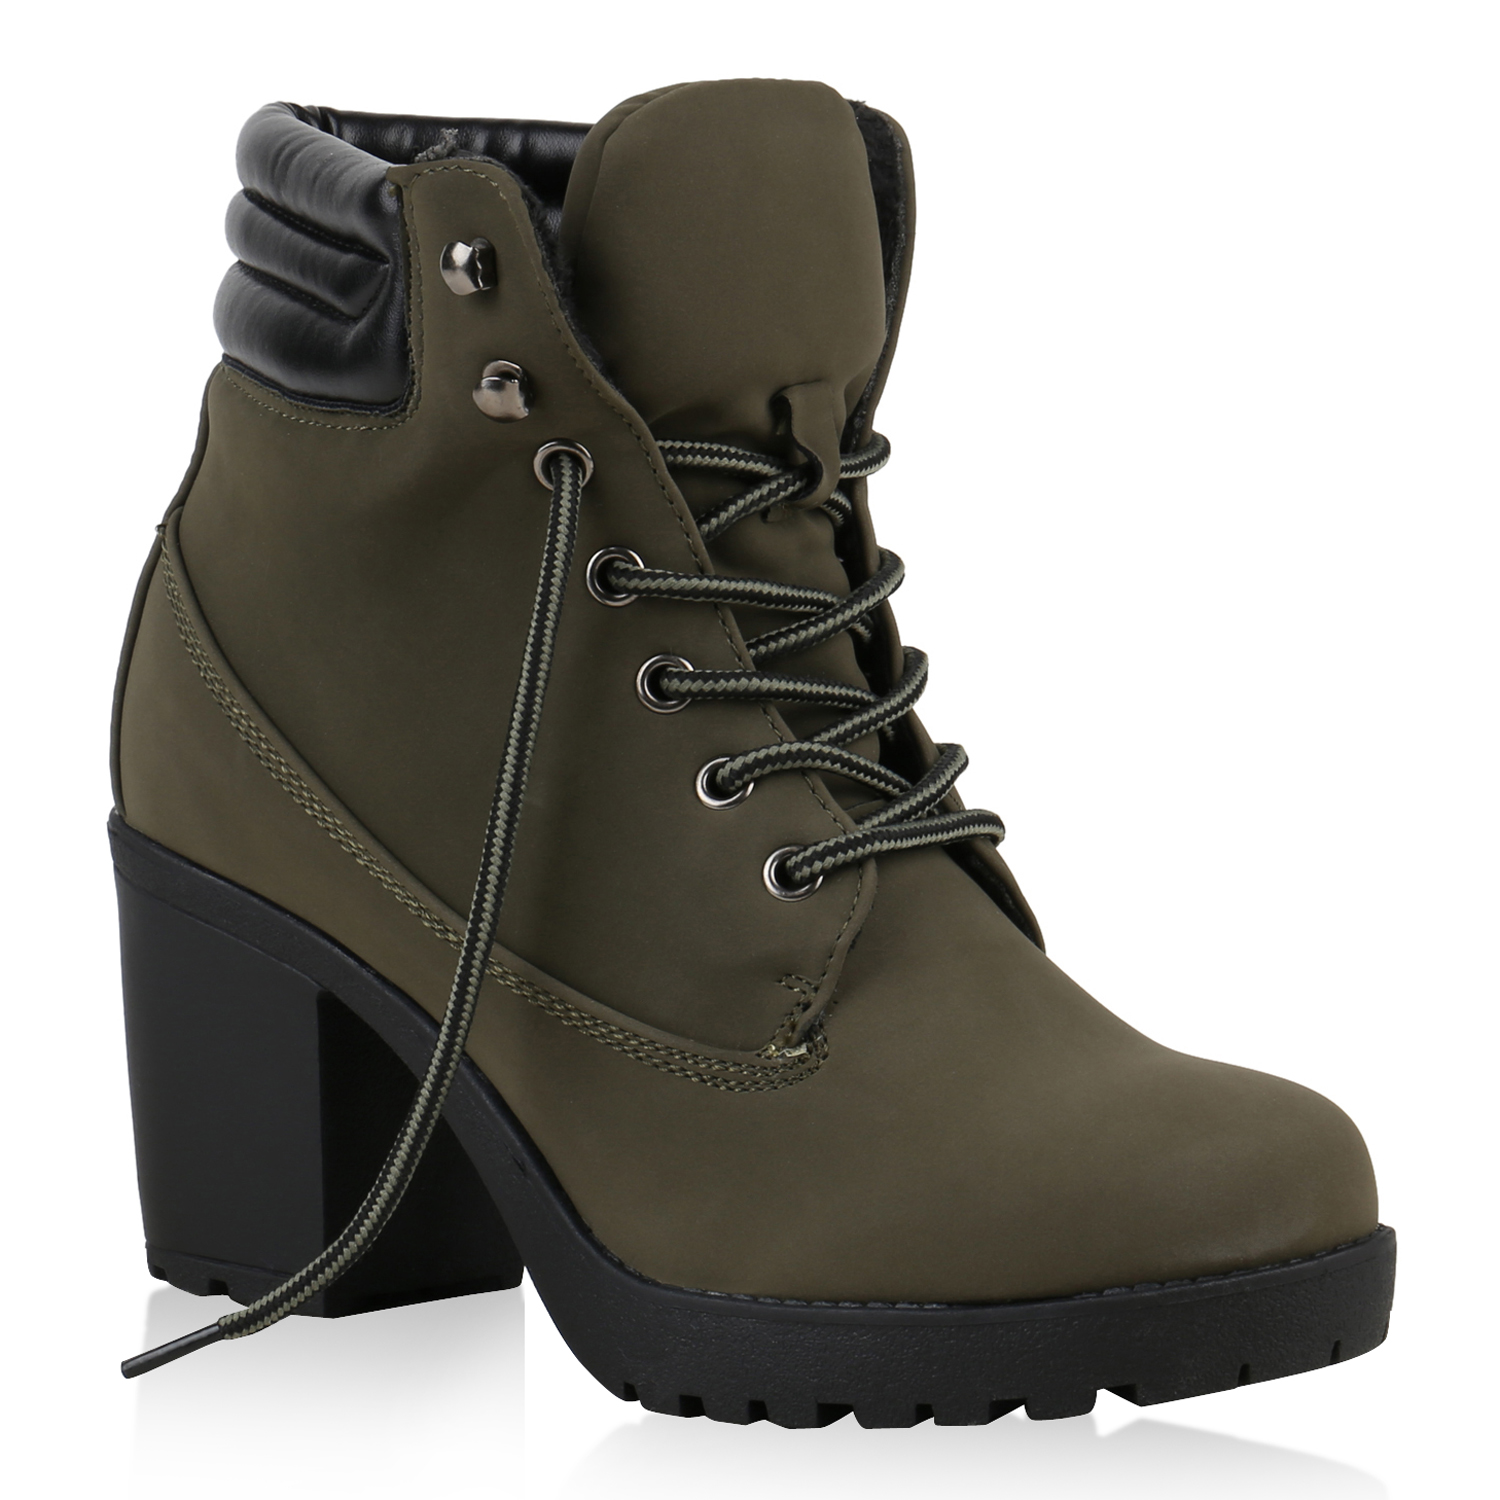 damen worker boots profil sohle block absatz stiefeletten 811964 ebay. Black Bedroom Furniture Sets. Home Design Ideas